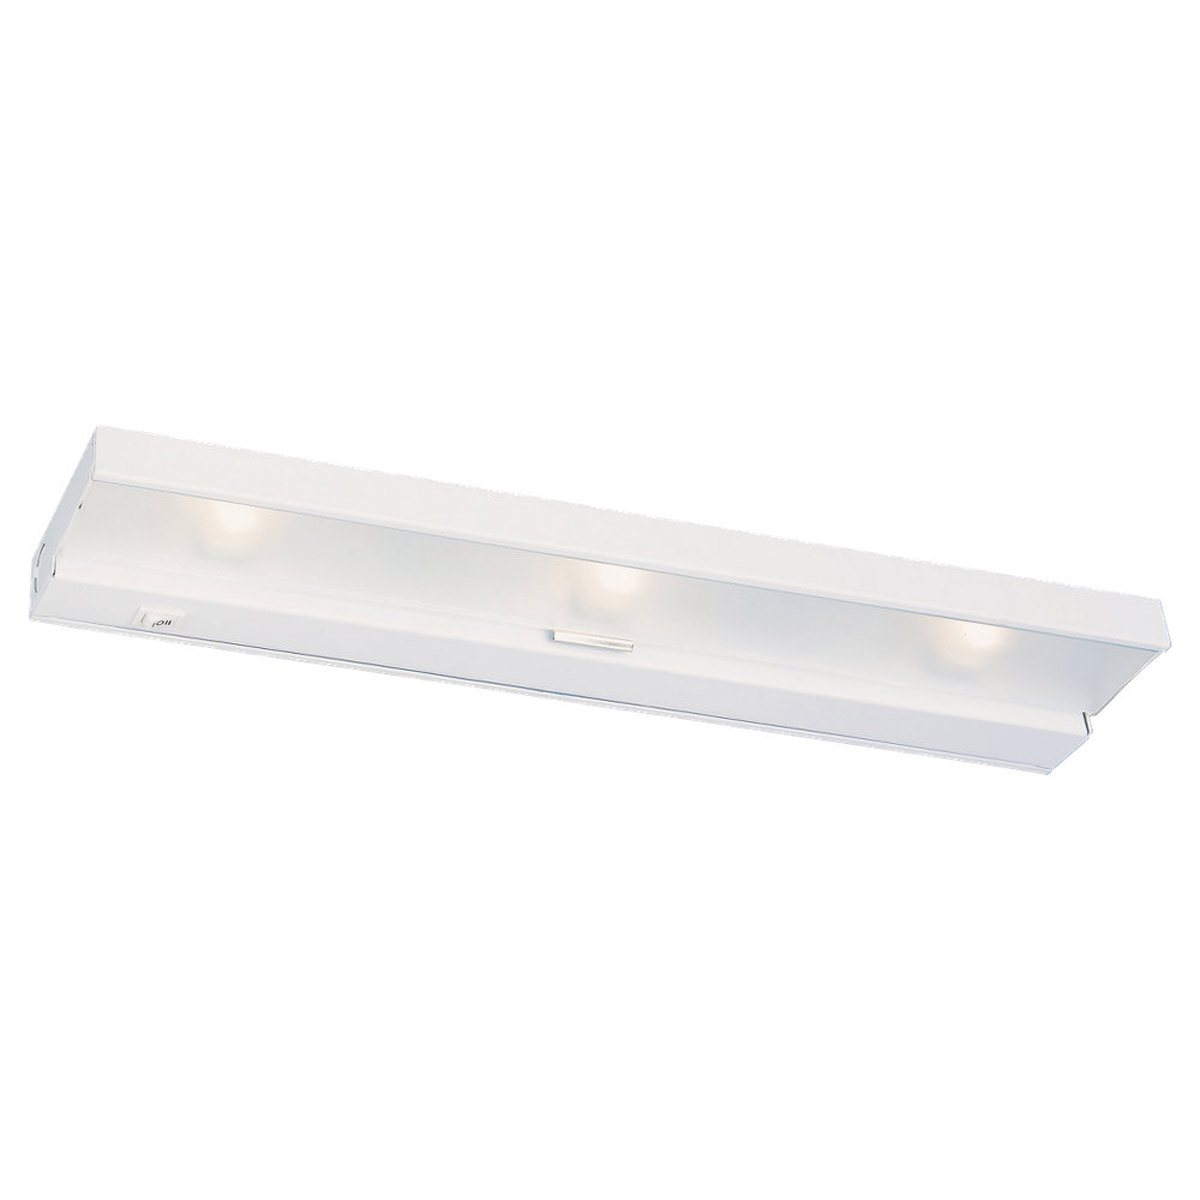 Sea Gull Lighting Undercabinet Lighting 3 Light Undercabinet Halogen in White 98023-15